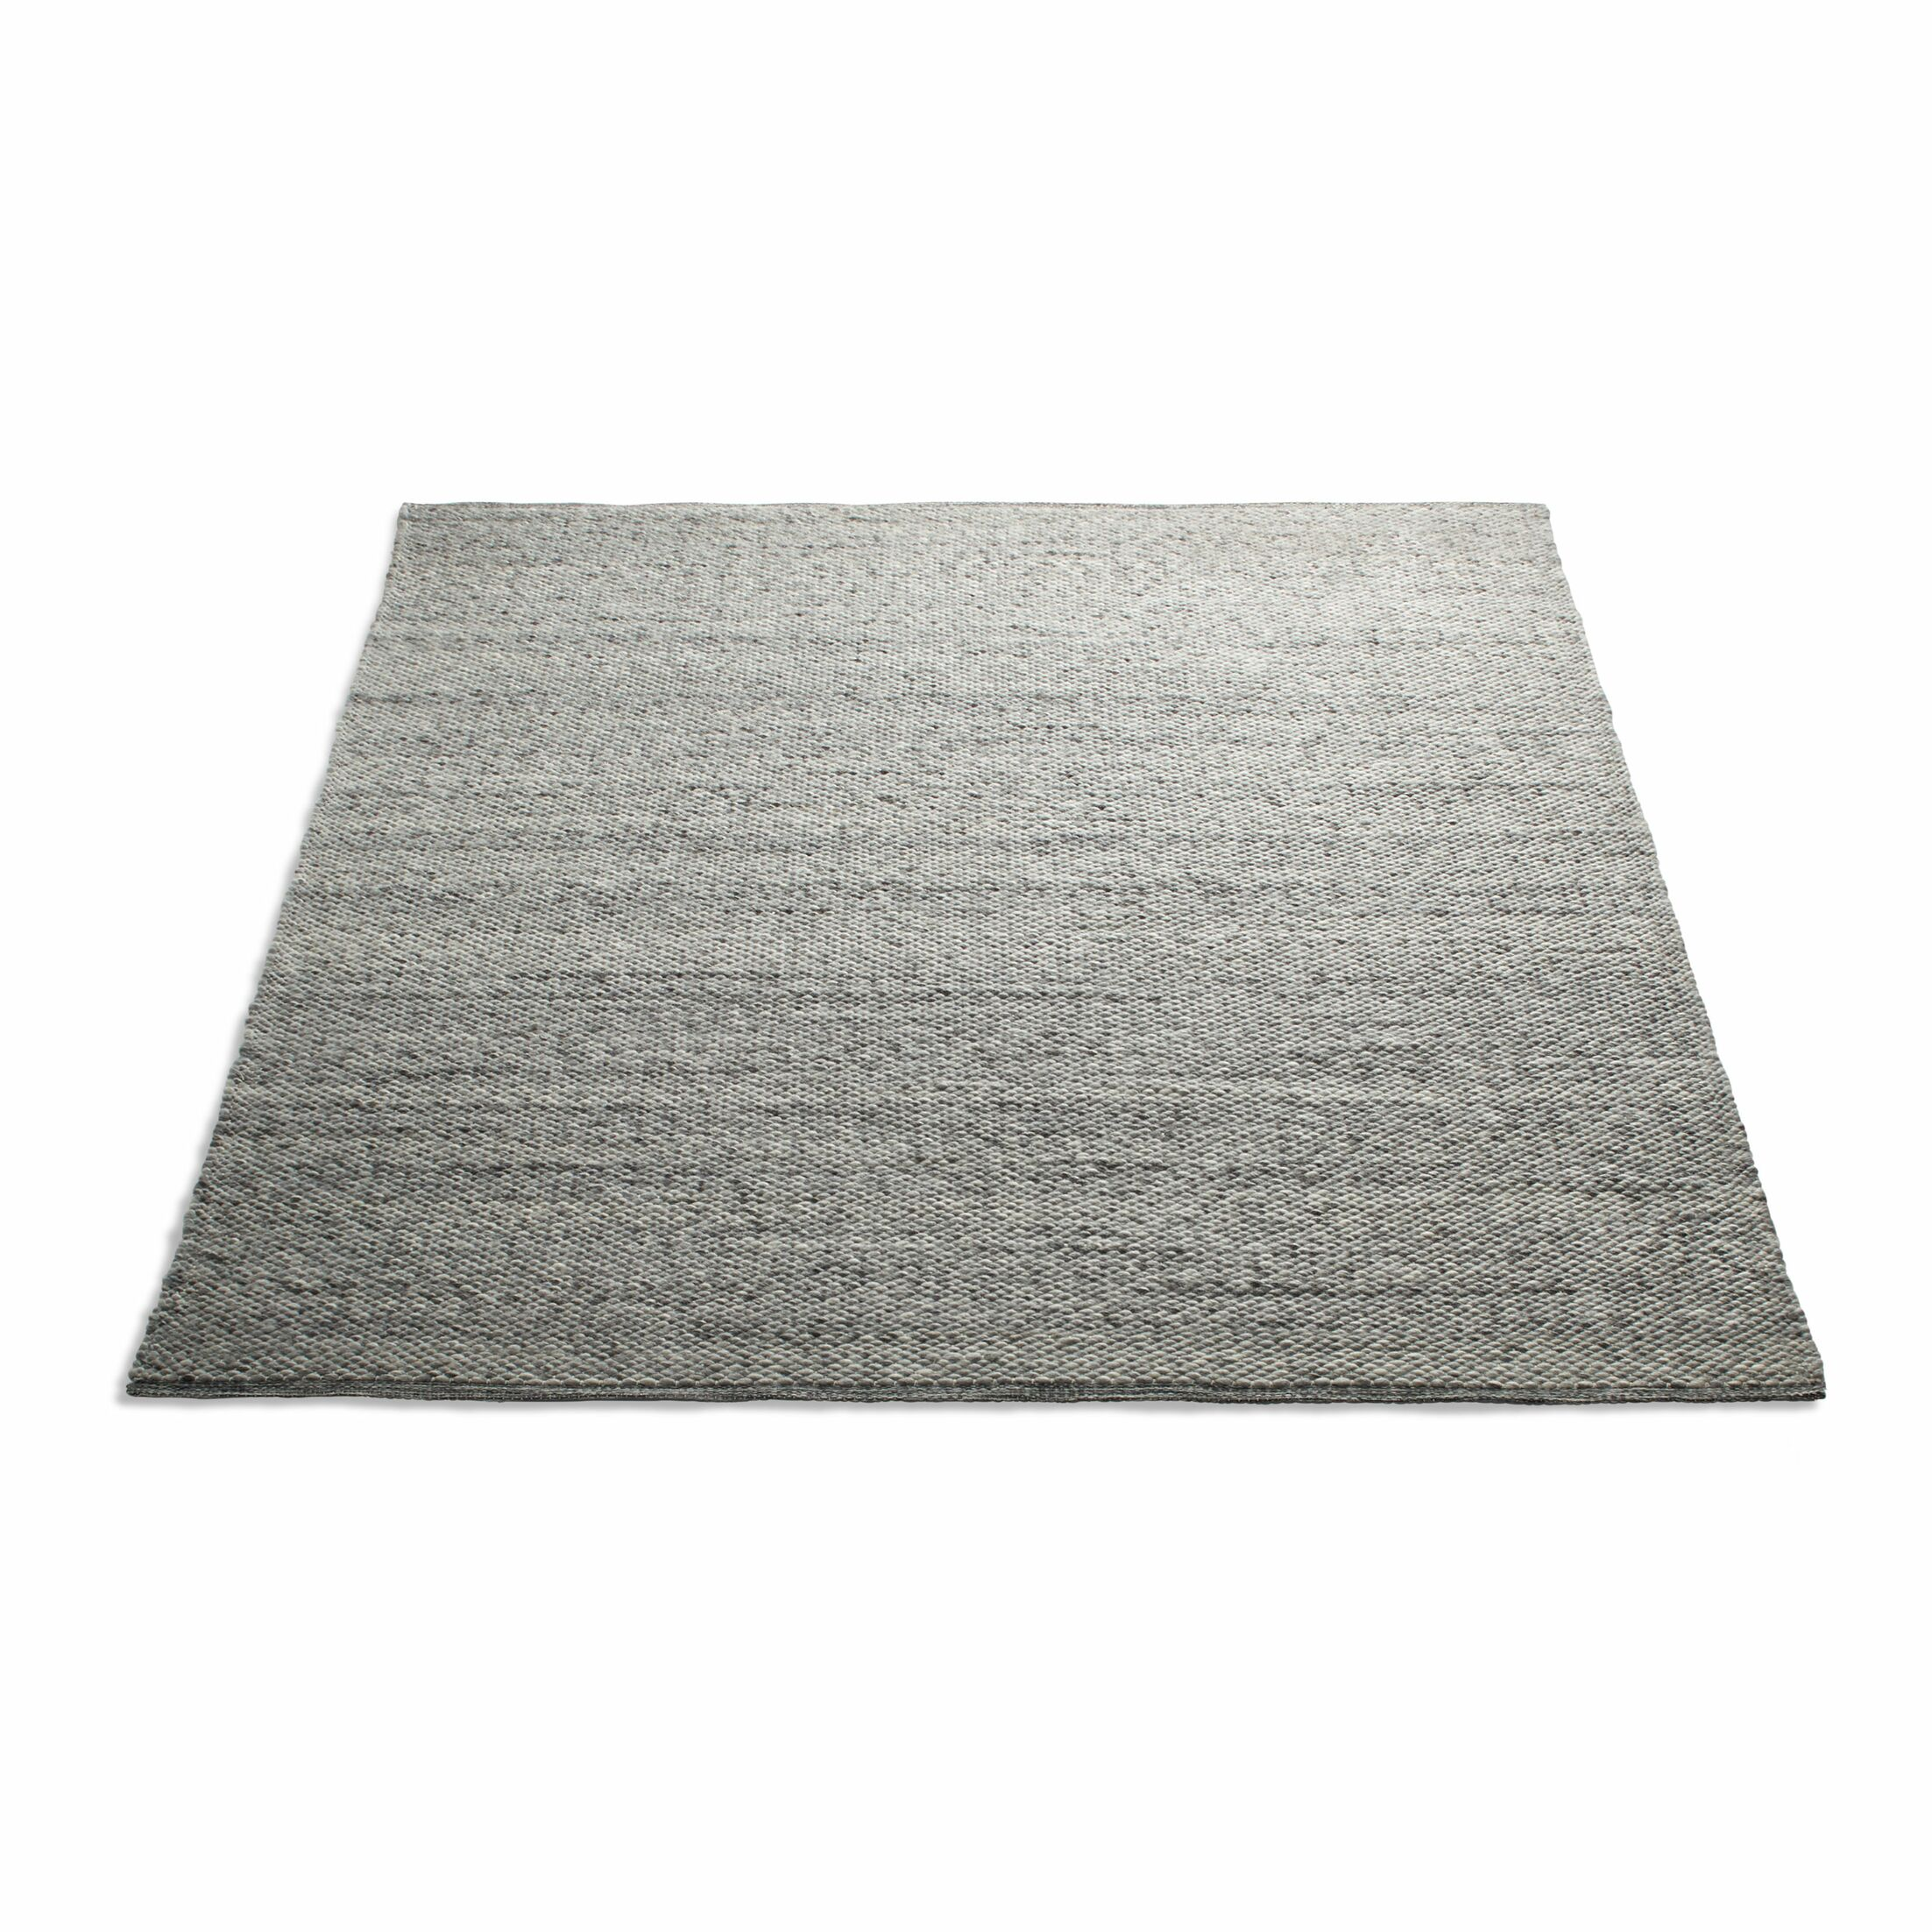 Sinder Hand-Woven Wool Gray Area Rug Rug Size: 8' x 10'